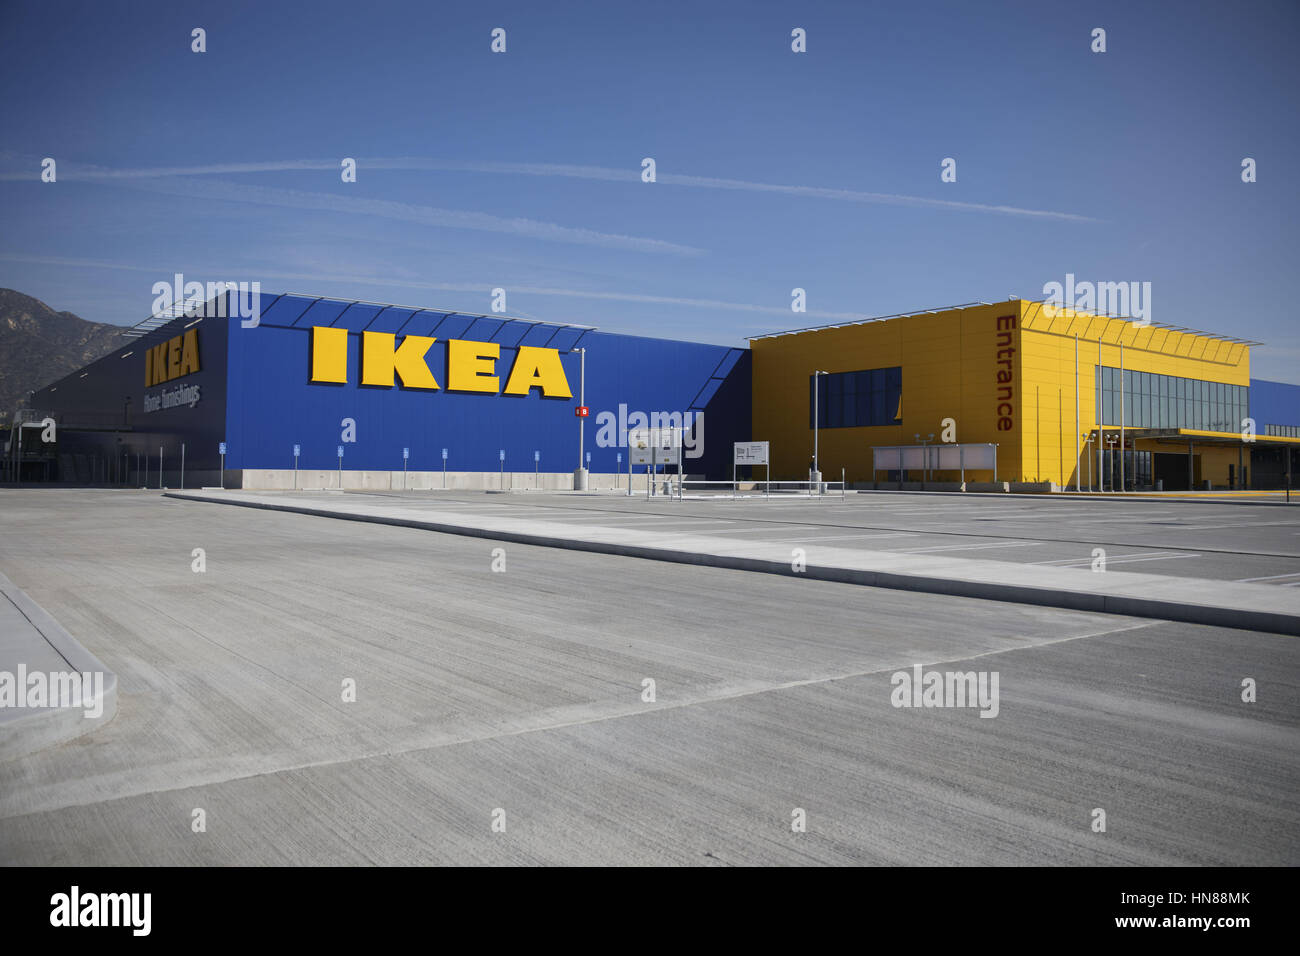 The Parking Lot Of The New IKEA Burbank Home Furnishings Store On  Wednesday, February 1, 2017 In Burbank, Calif. The 456,000 Square Foot Furniture  Store On ...